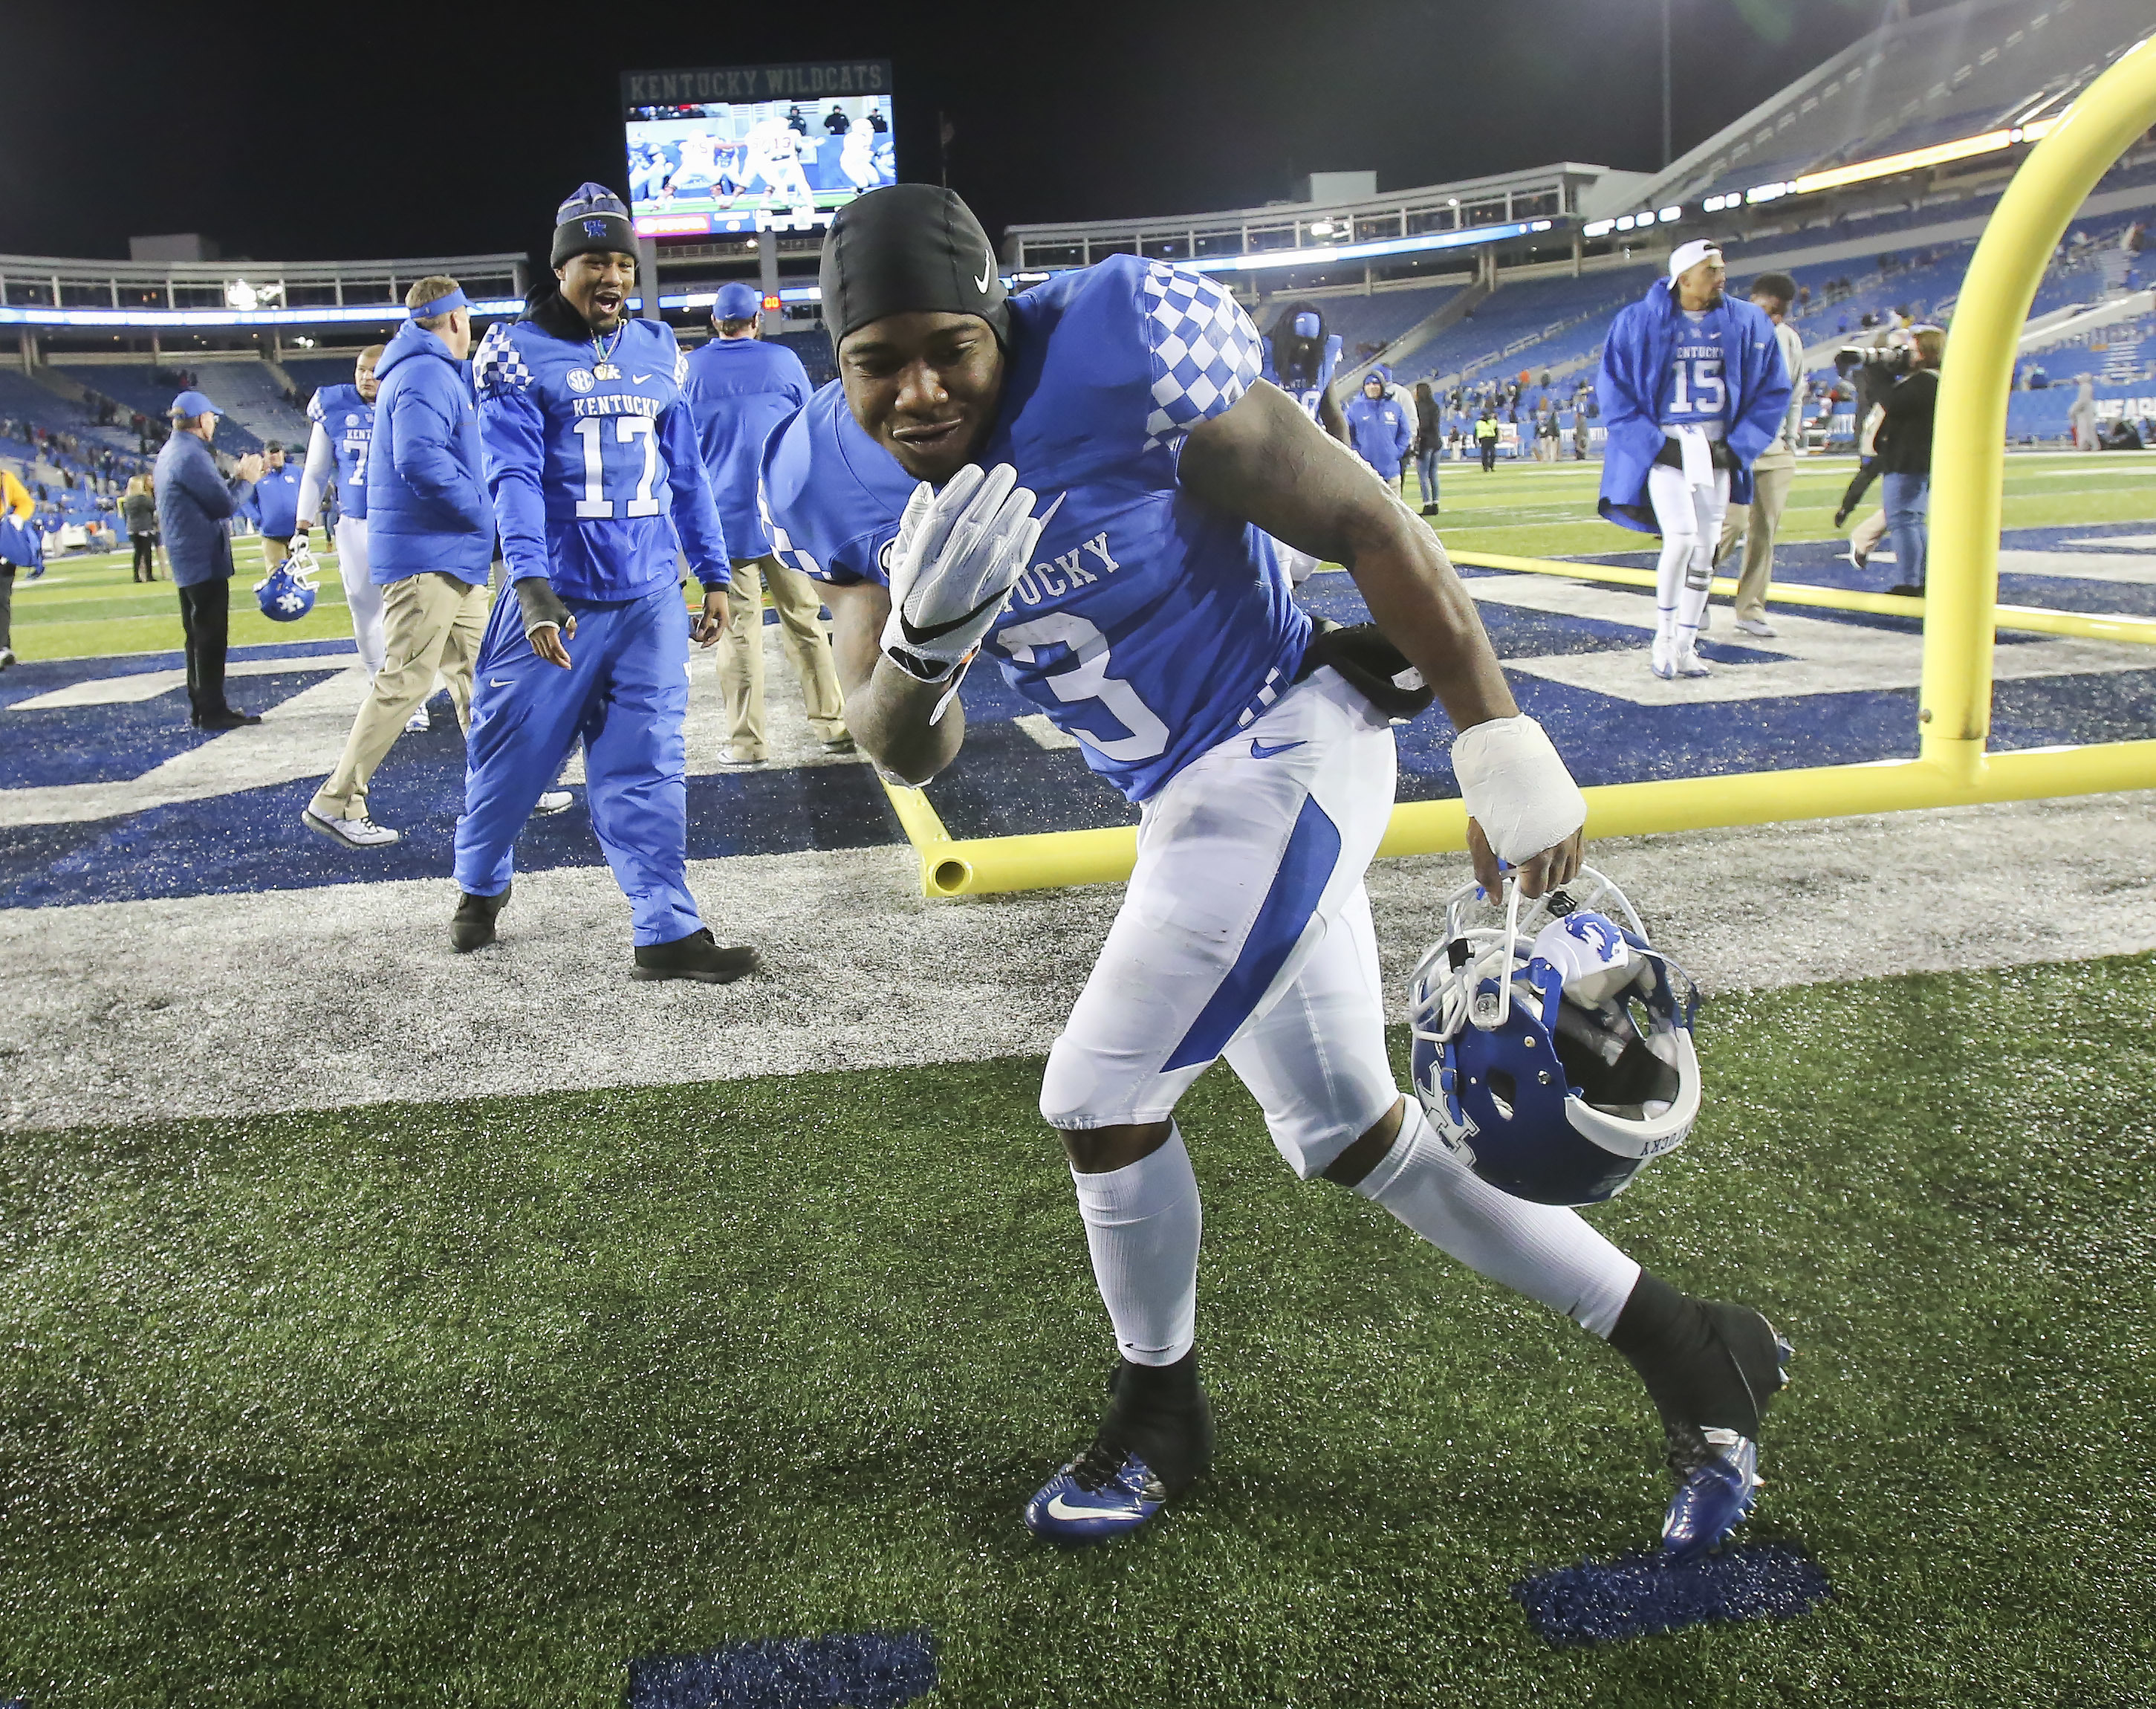 Kentucky running back Jojo Kemp strikes a bowling pose after his team earned a bowl bid by defeating Austin Peay 49-13 in an NCAA college football game Saturday, Nov. 19, 2016, in Lexington, Ky. (AP Photo/David Stephenson)